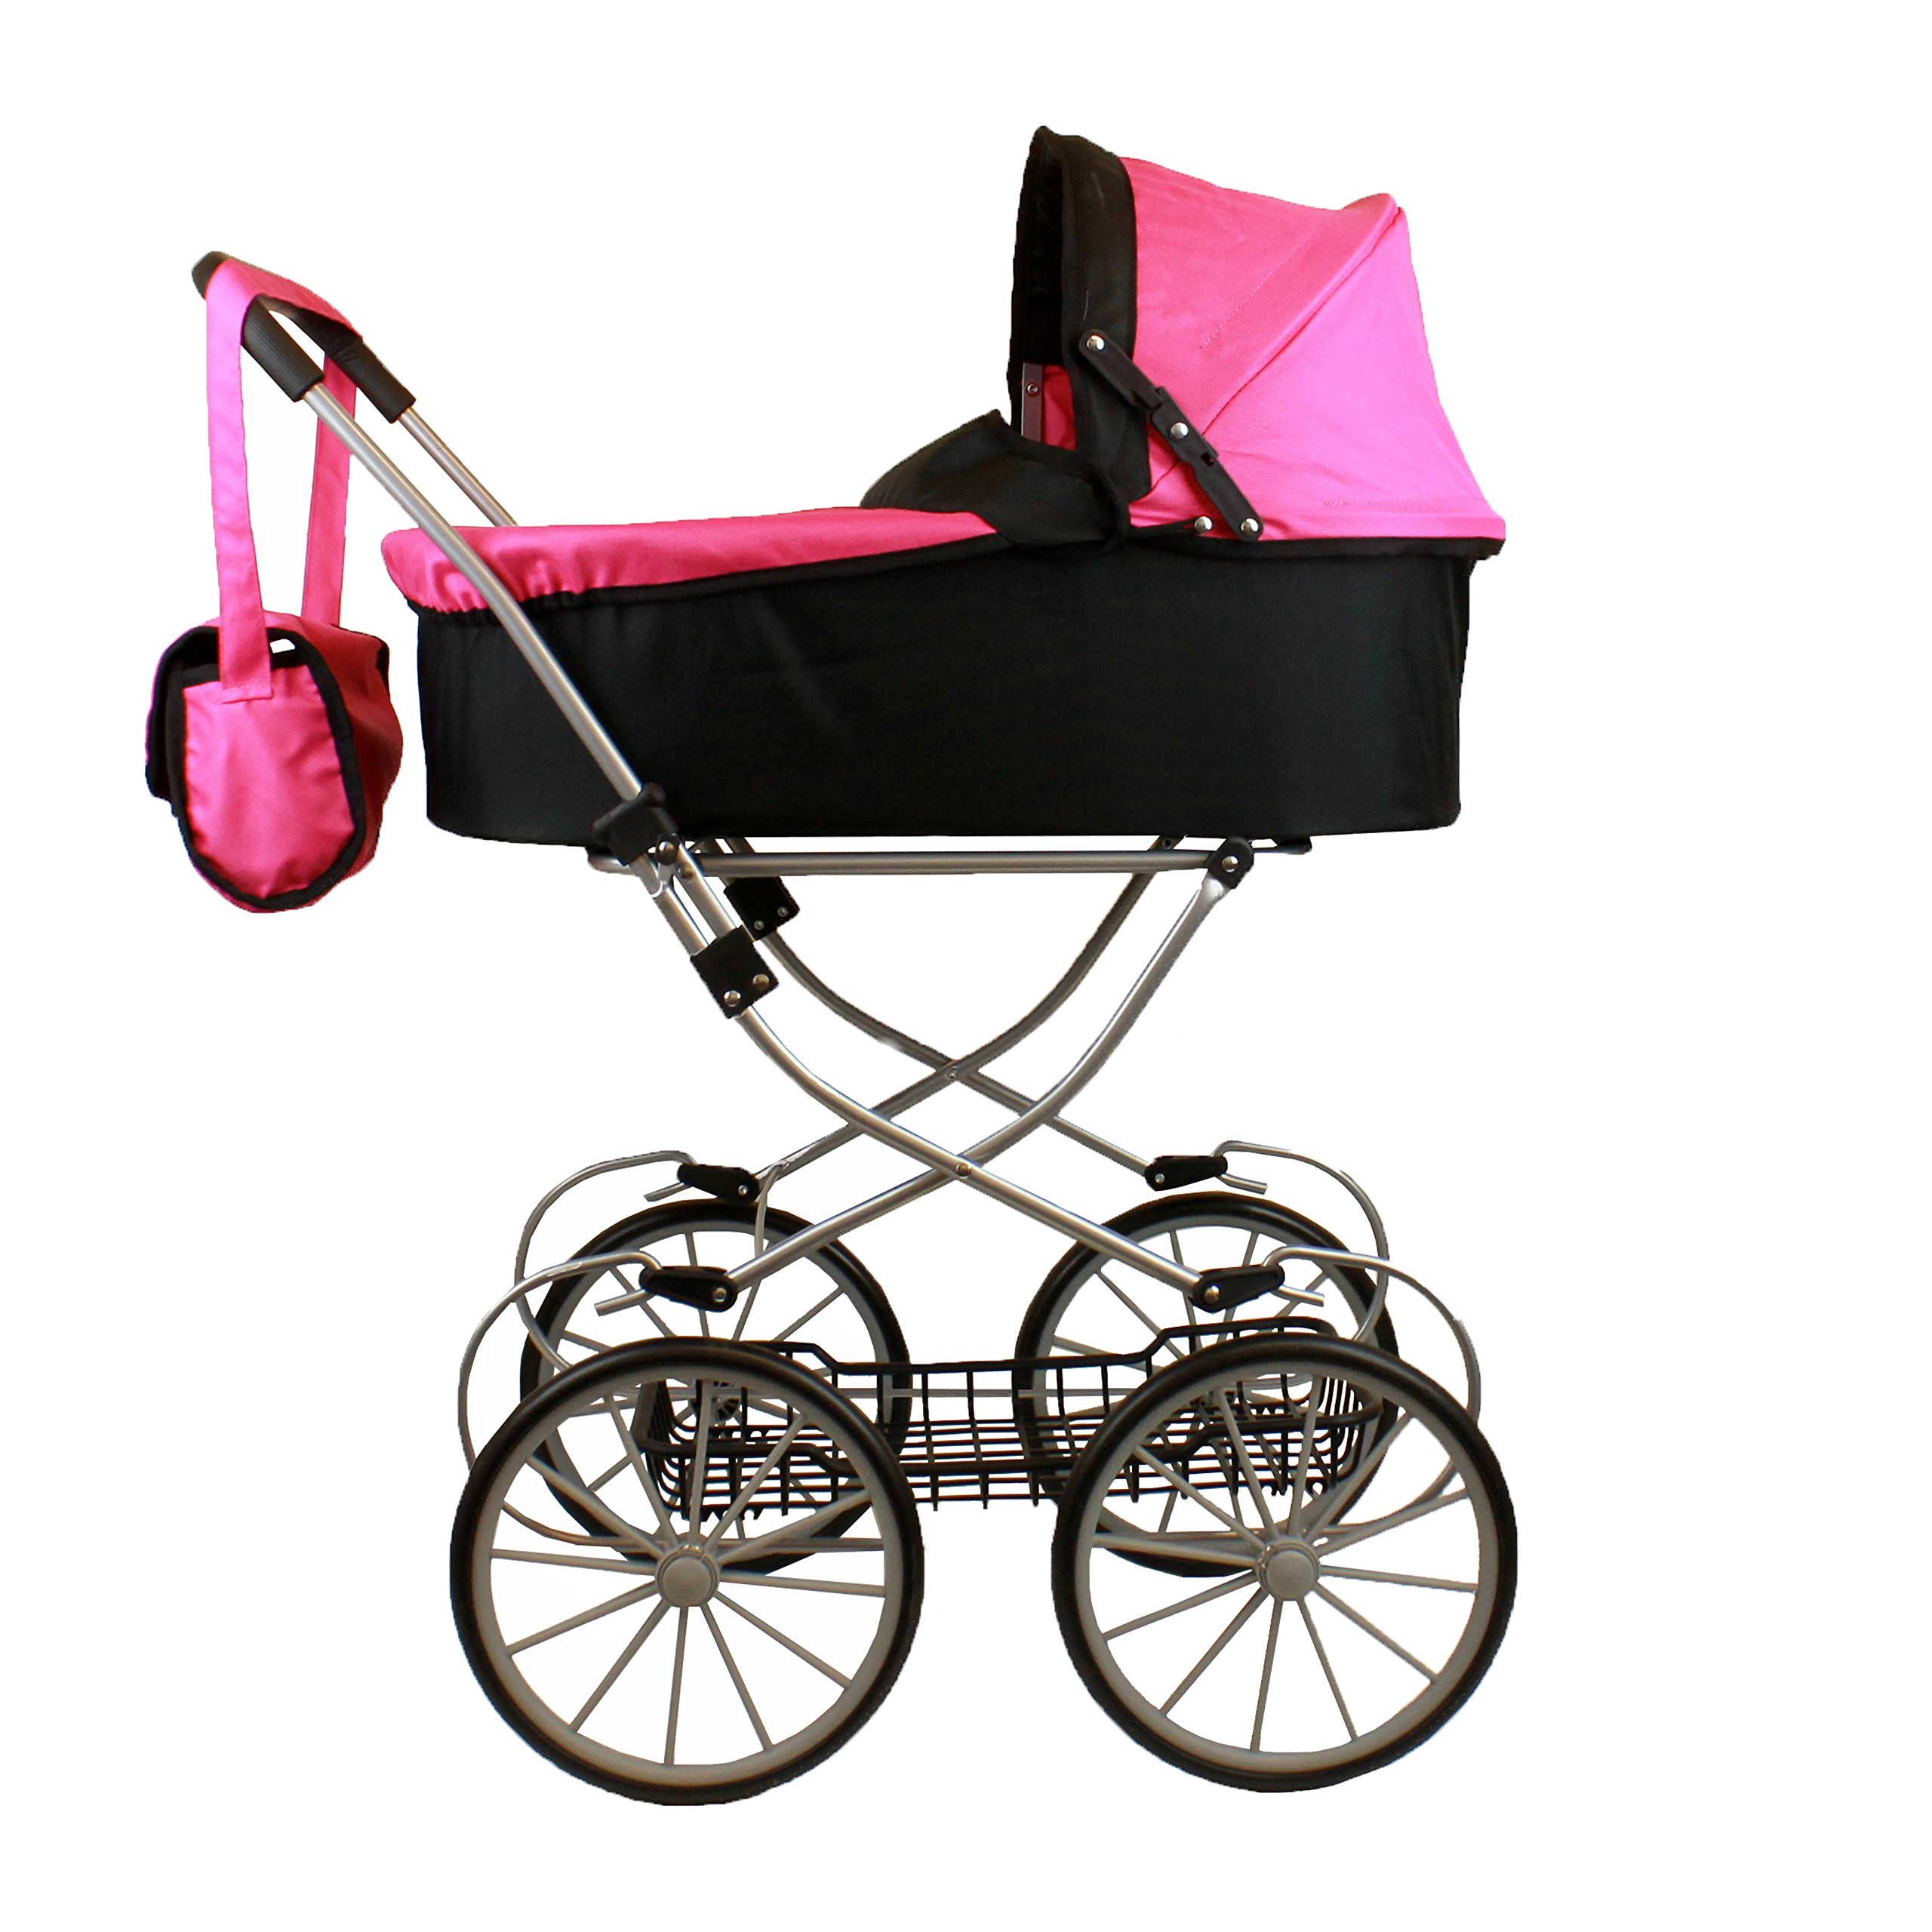 My Sweet princess deluxe pram (32'' high) with FREE carriage bag